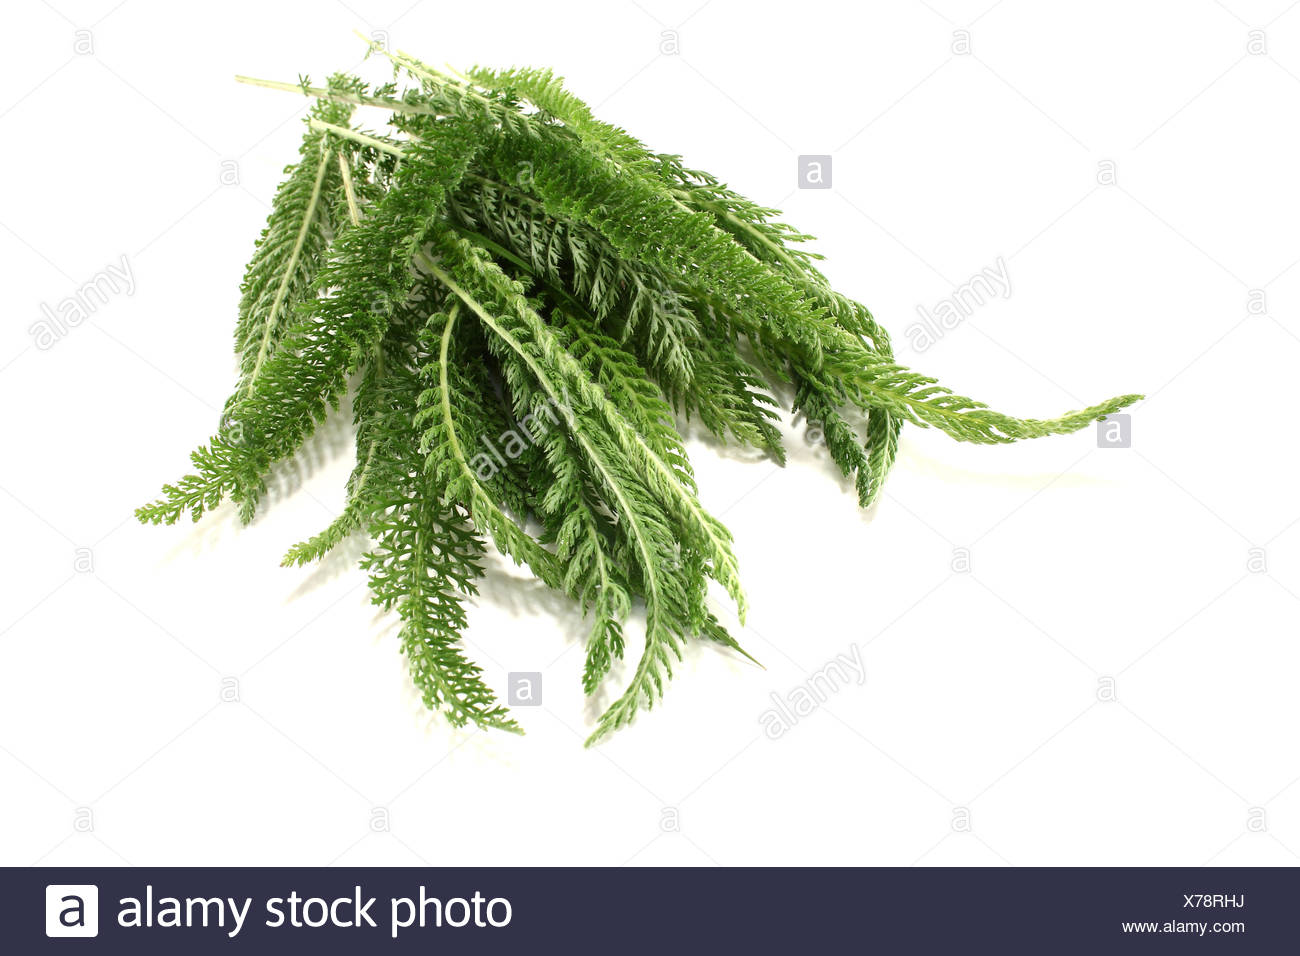 green milfoil - Stock Image